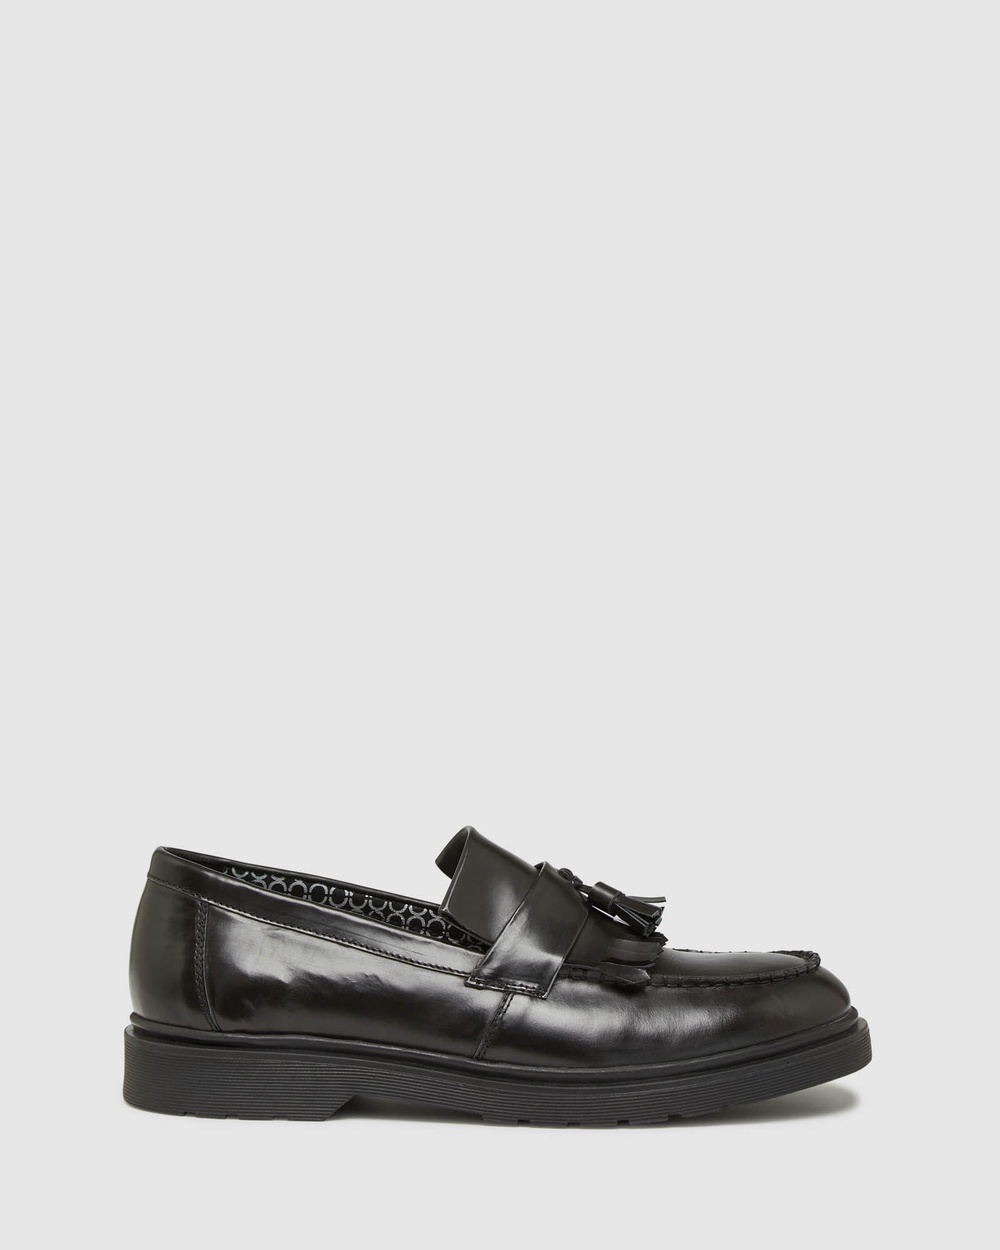 Oxford Remy Leather Penny Loafer Shoes Flats Black